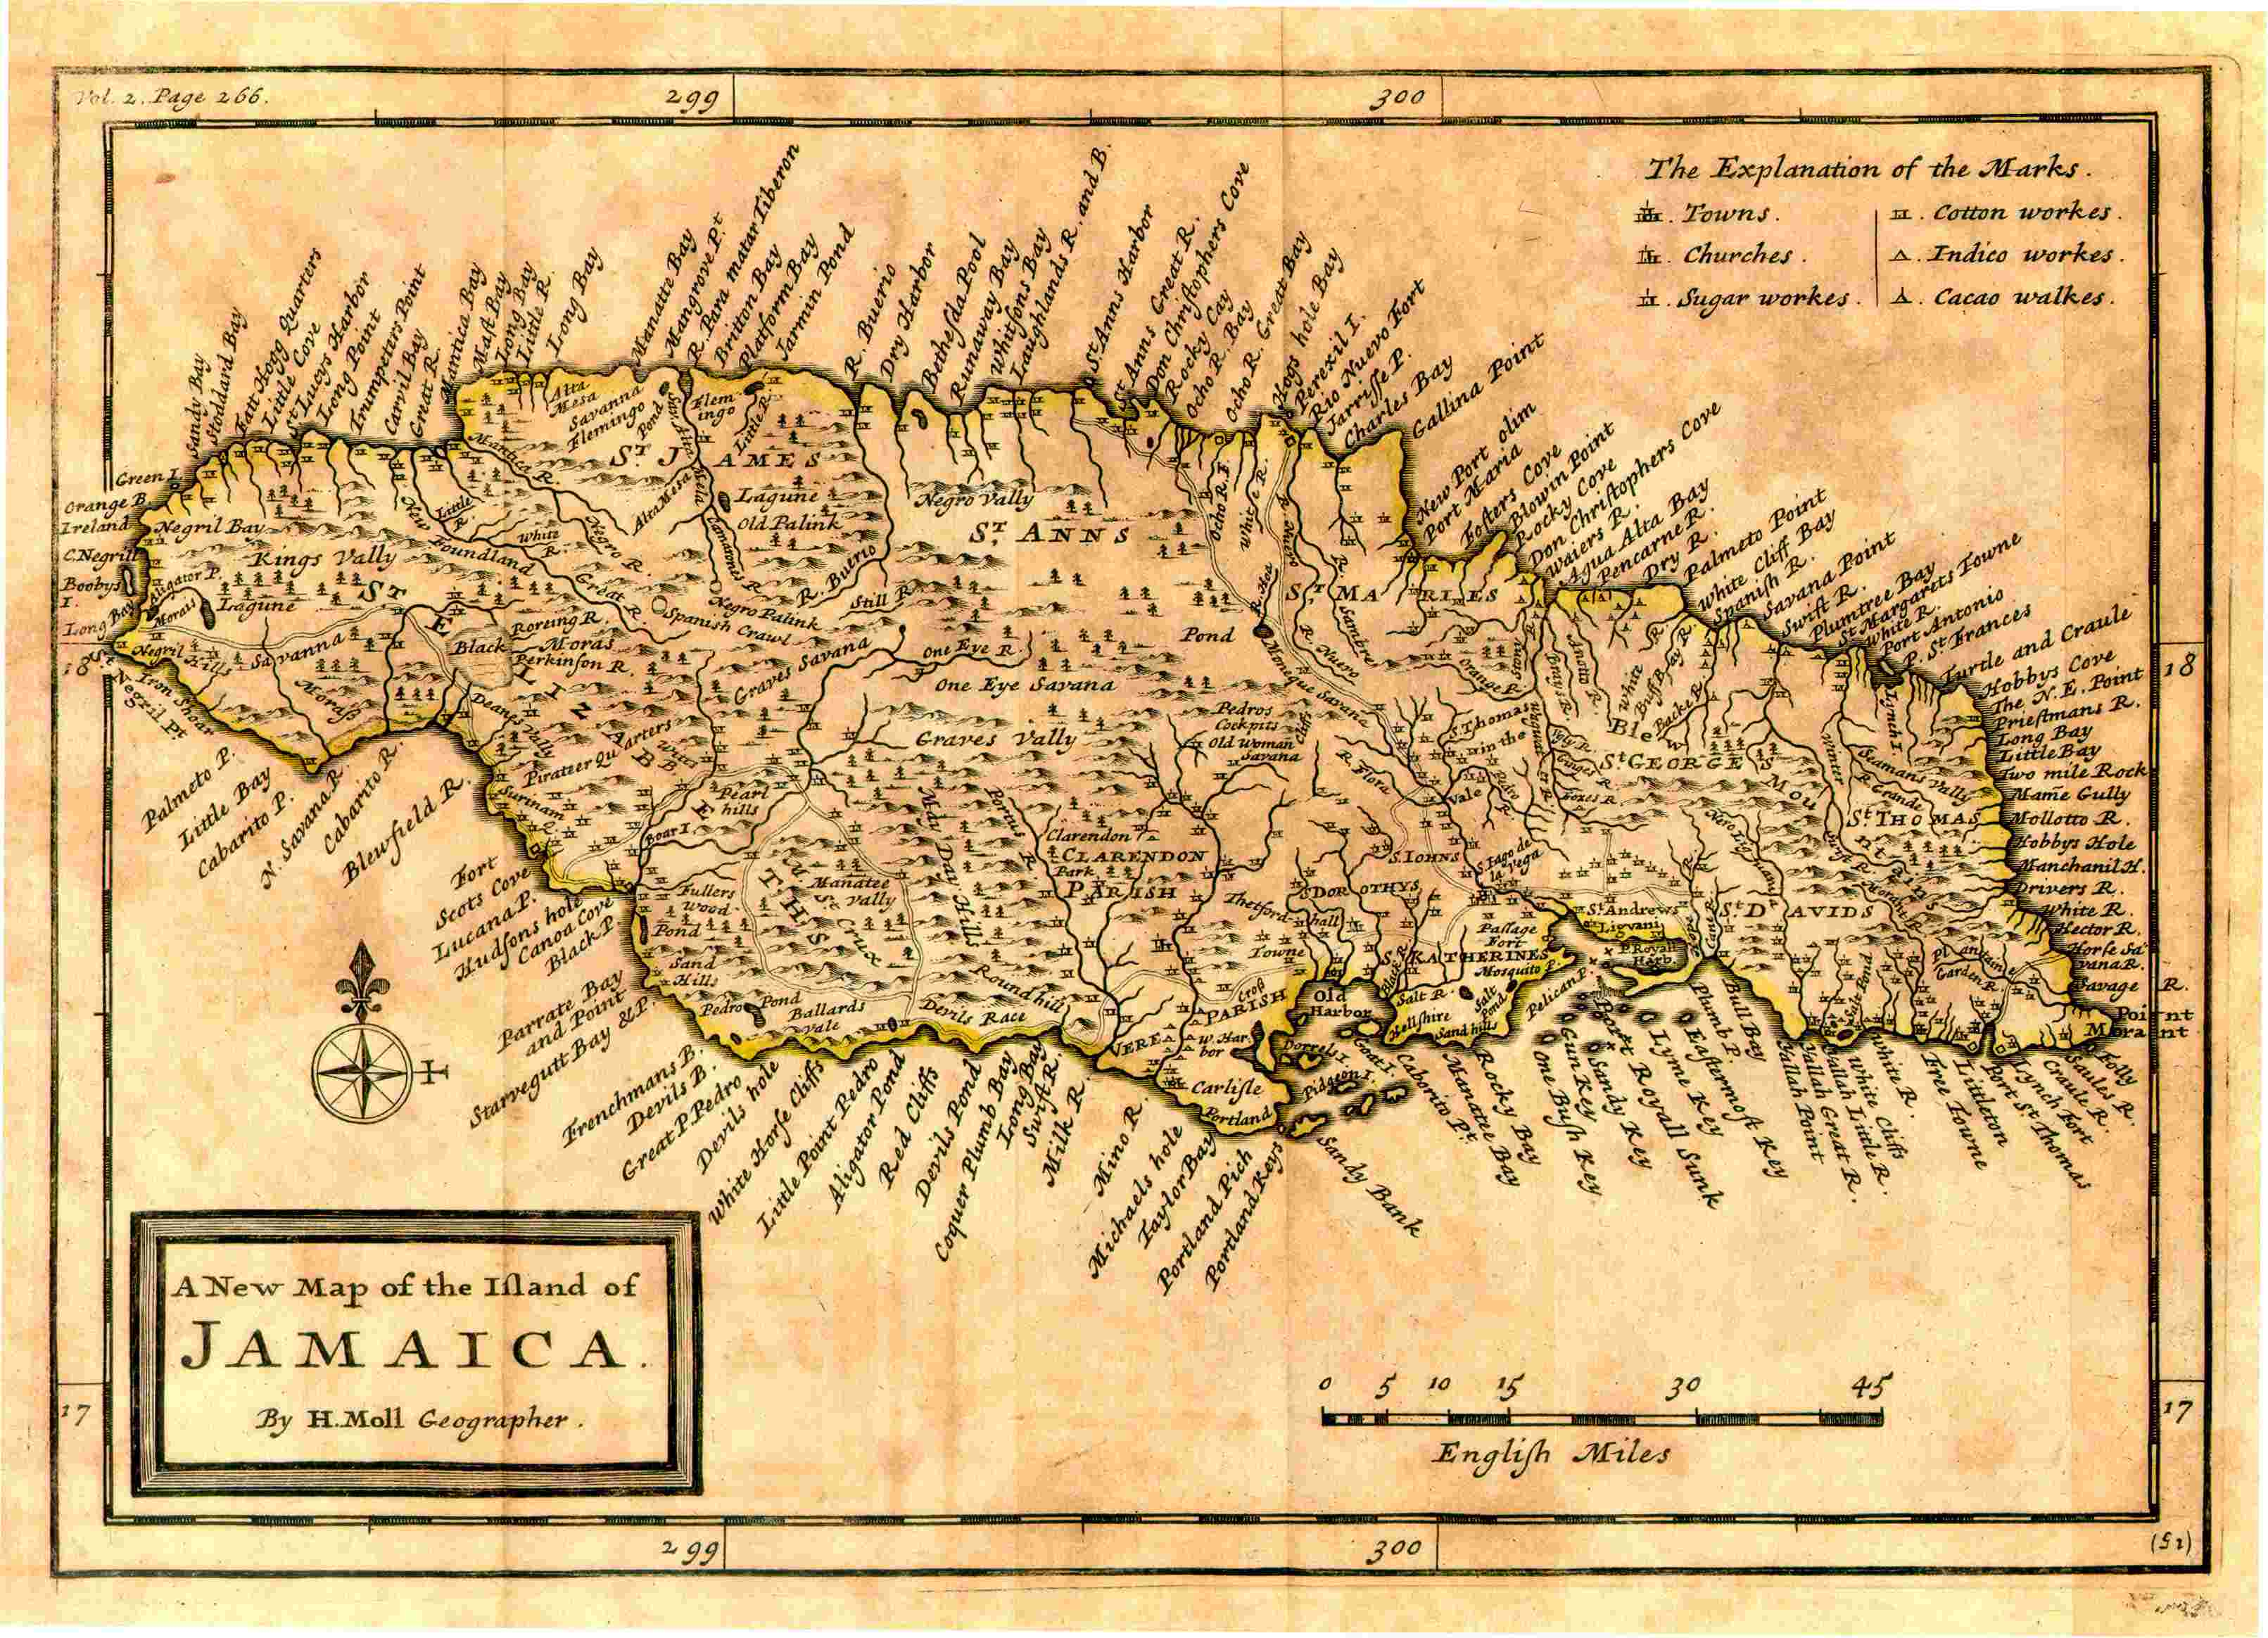 Datei:Herman Moll. A New Map of the Island of Jamaica. 1717.jpg ...